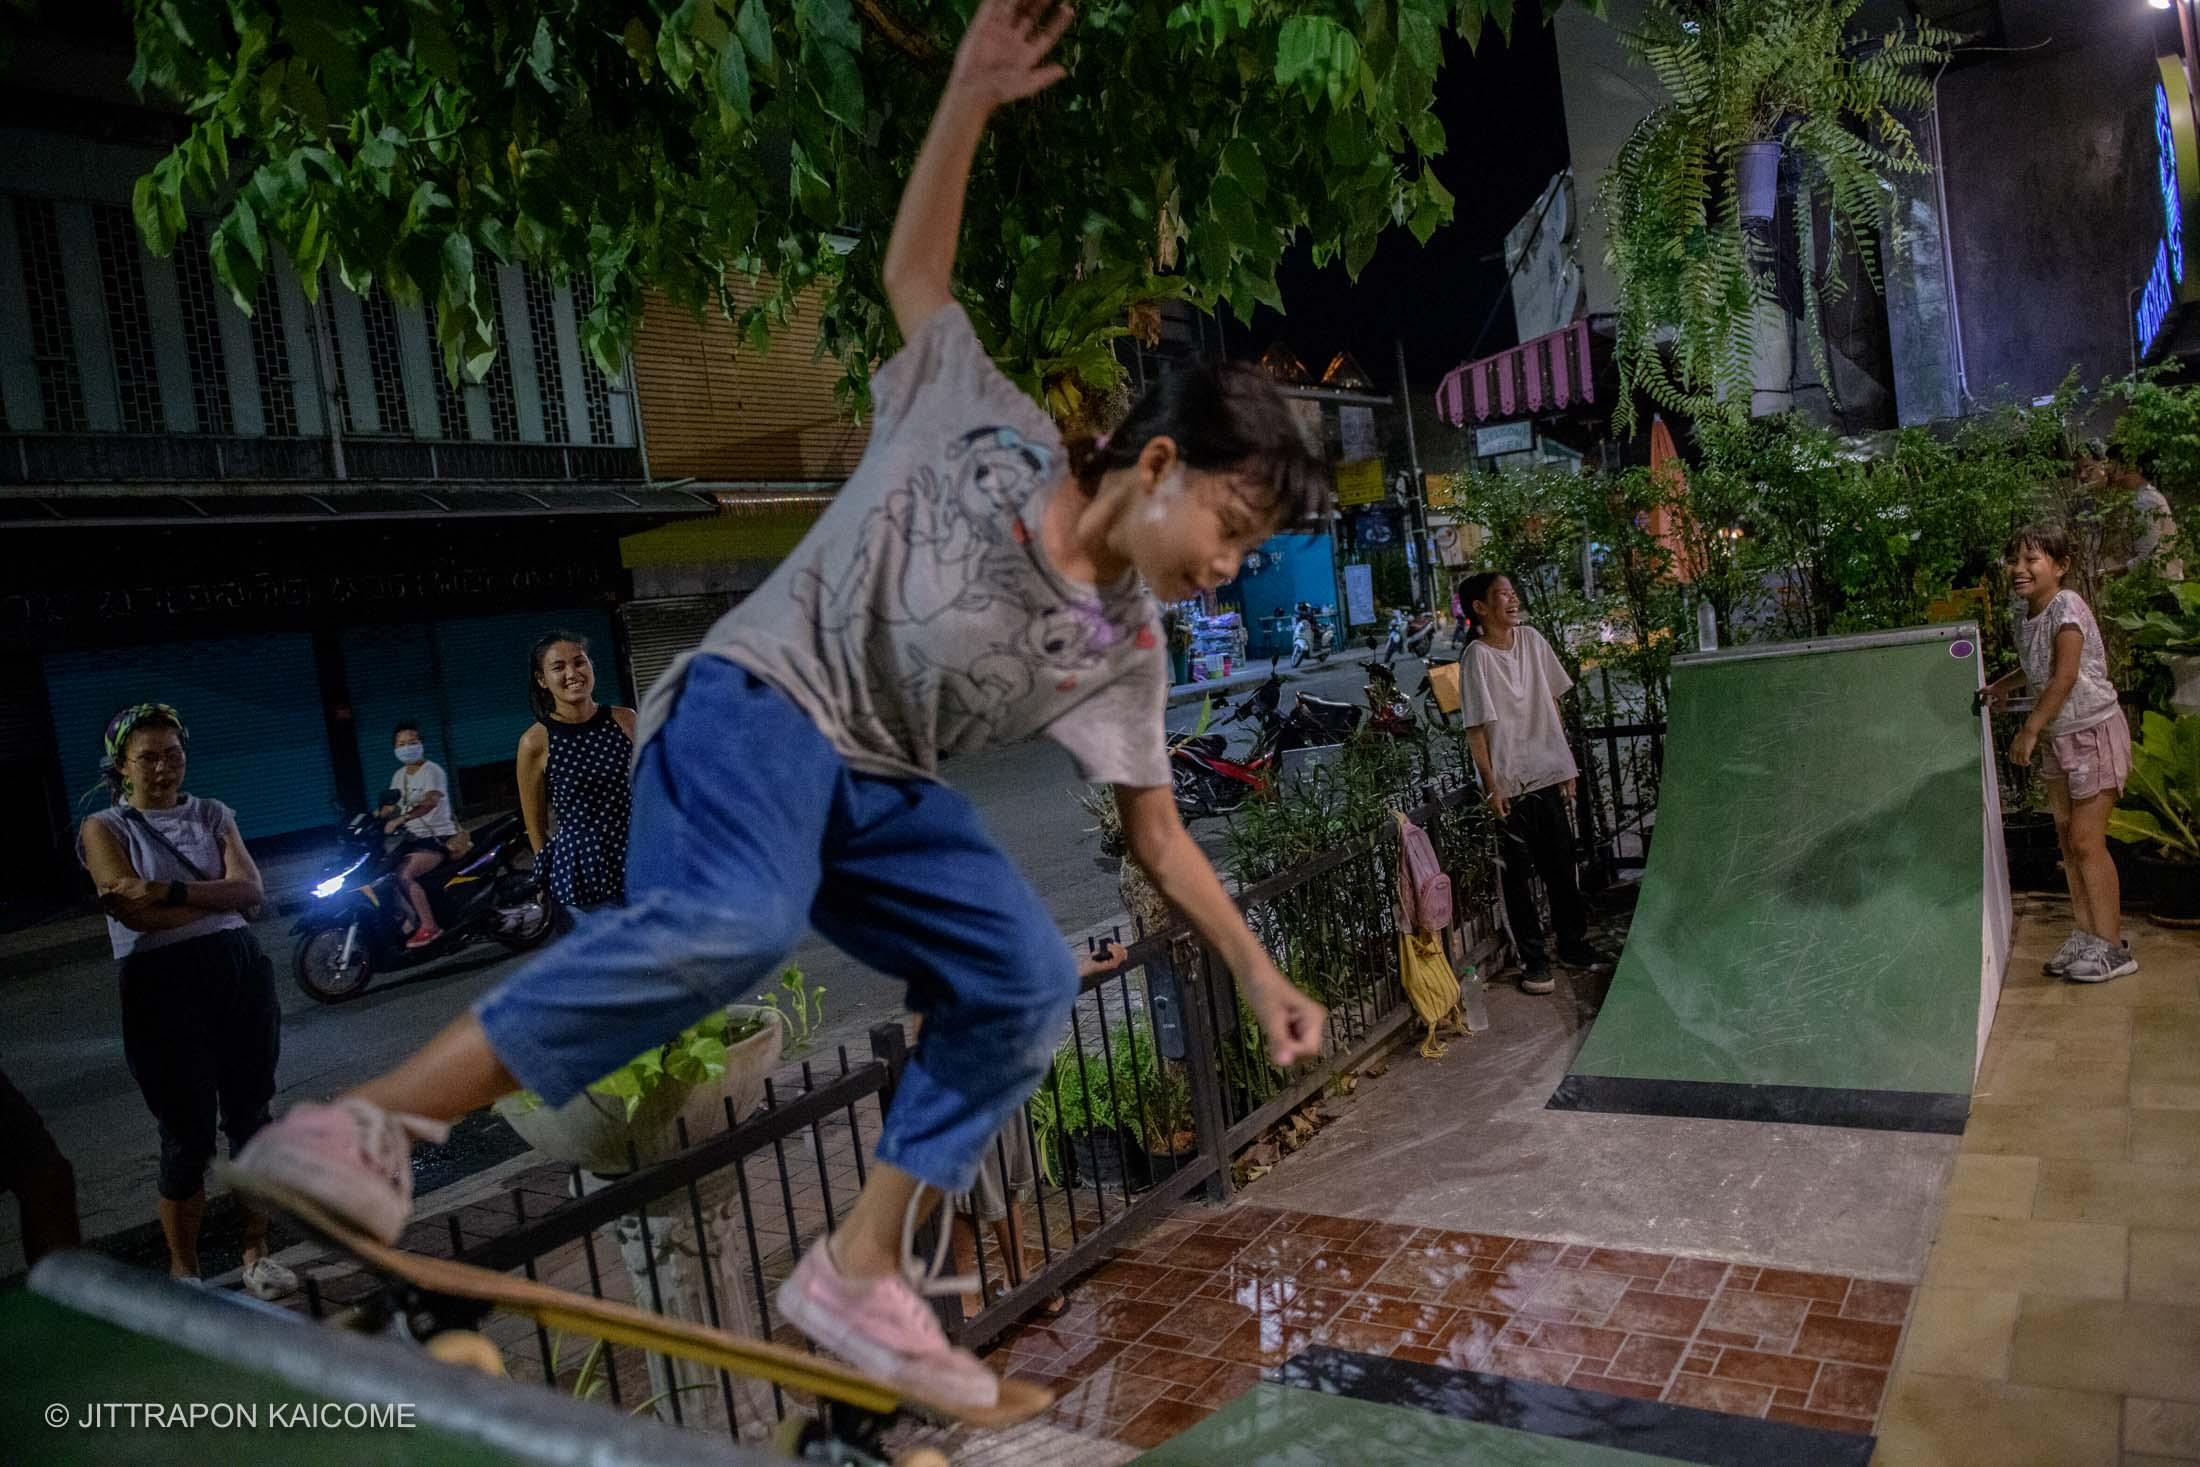 08.05 PM - The Young talented female skaters are practicing skateboarding in front of their family burger restaurant amid to the closure of businesses in the area inside the center of Chiang Mai old town due to Coronavirus. Which is also affecting the school closure and many skateboarding competitions are canceled. Chiang Mai, Thailand in March 16, 2020.